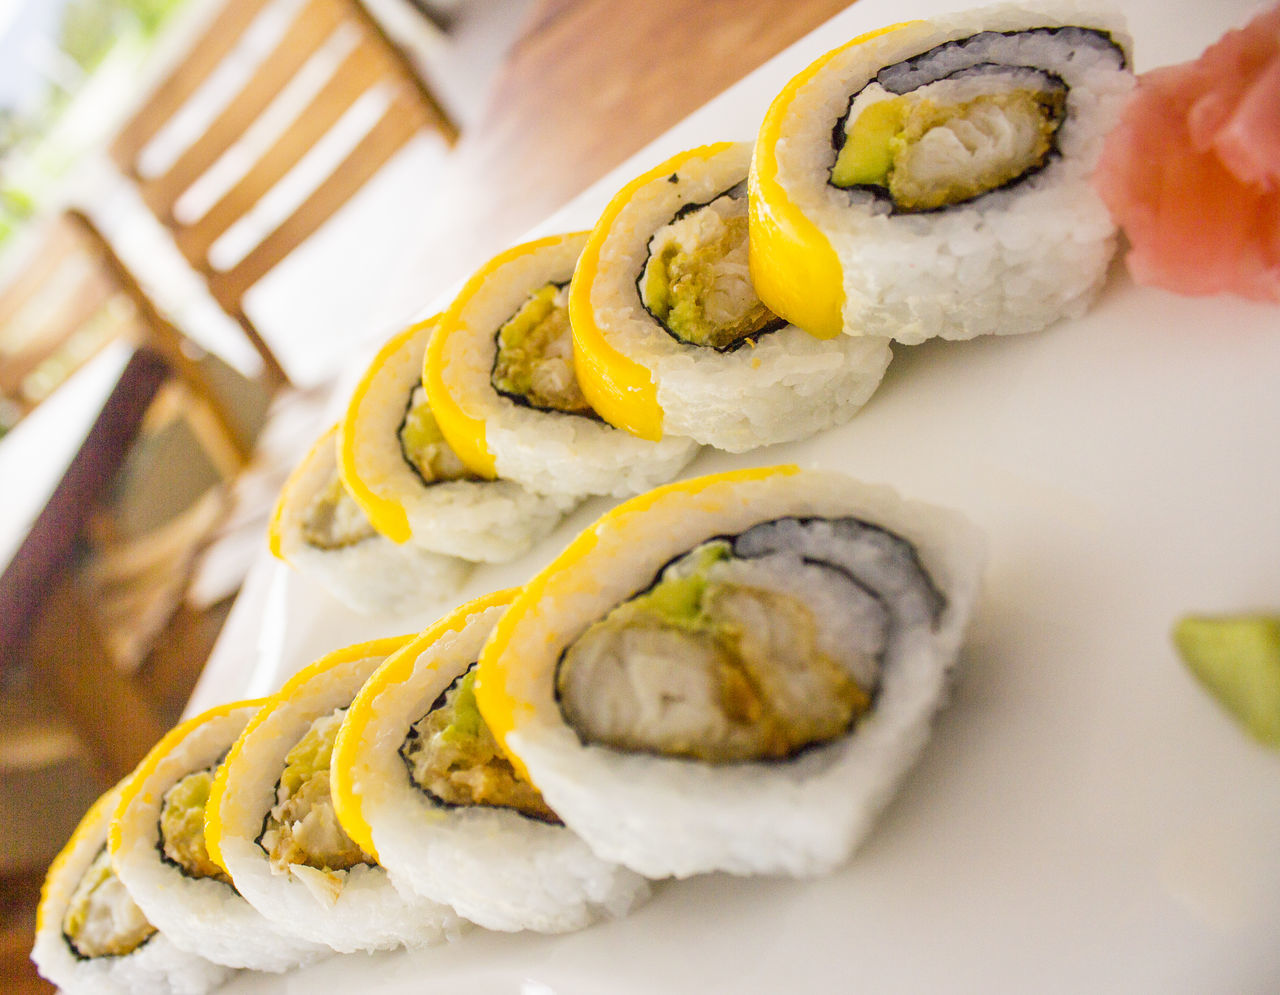 Close-up Day Egg Yolk Fast Food Food Food And Drink Freshness Healthy Eating Human Body Part Human Hand Indoors  One Person People Preparation  Prepared Potato Ready-to-eat Sushi Sushi Time Sushi! Sushilover Sushitime Table Yellow